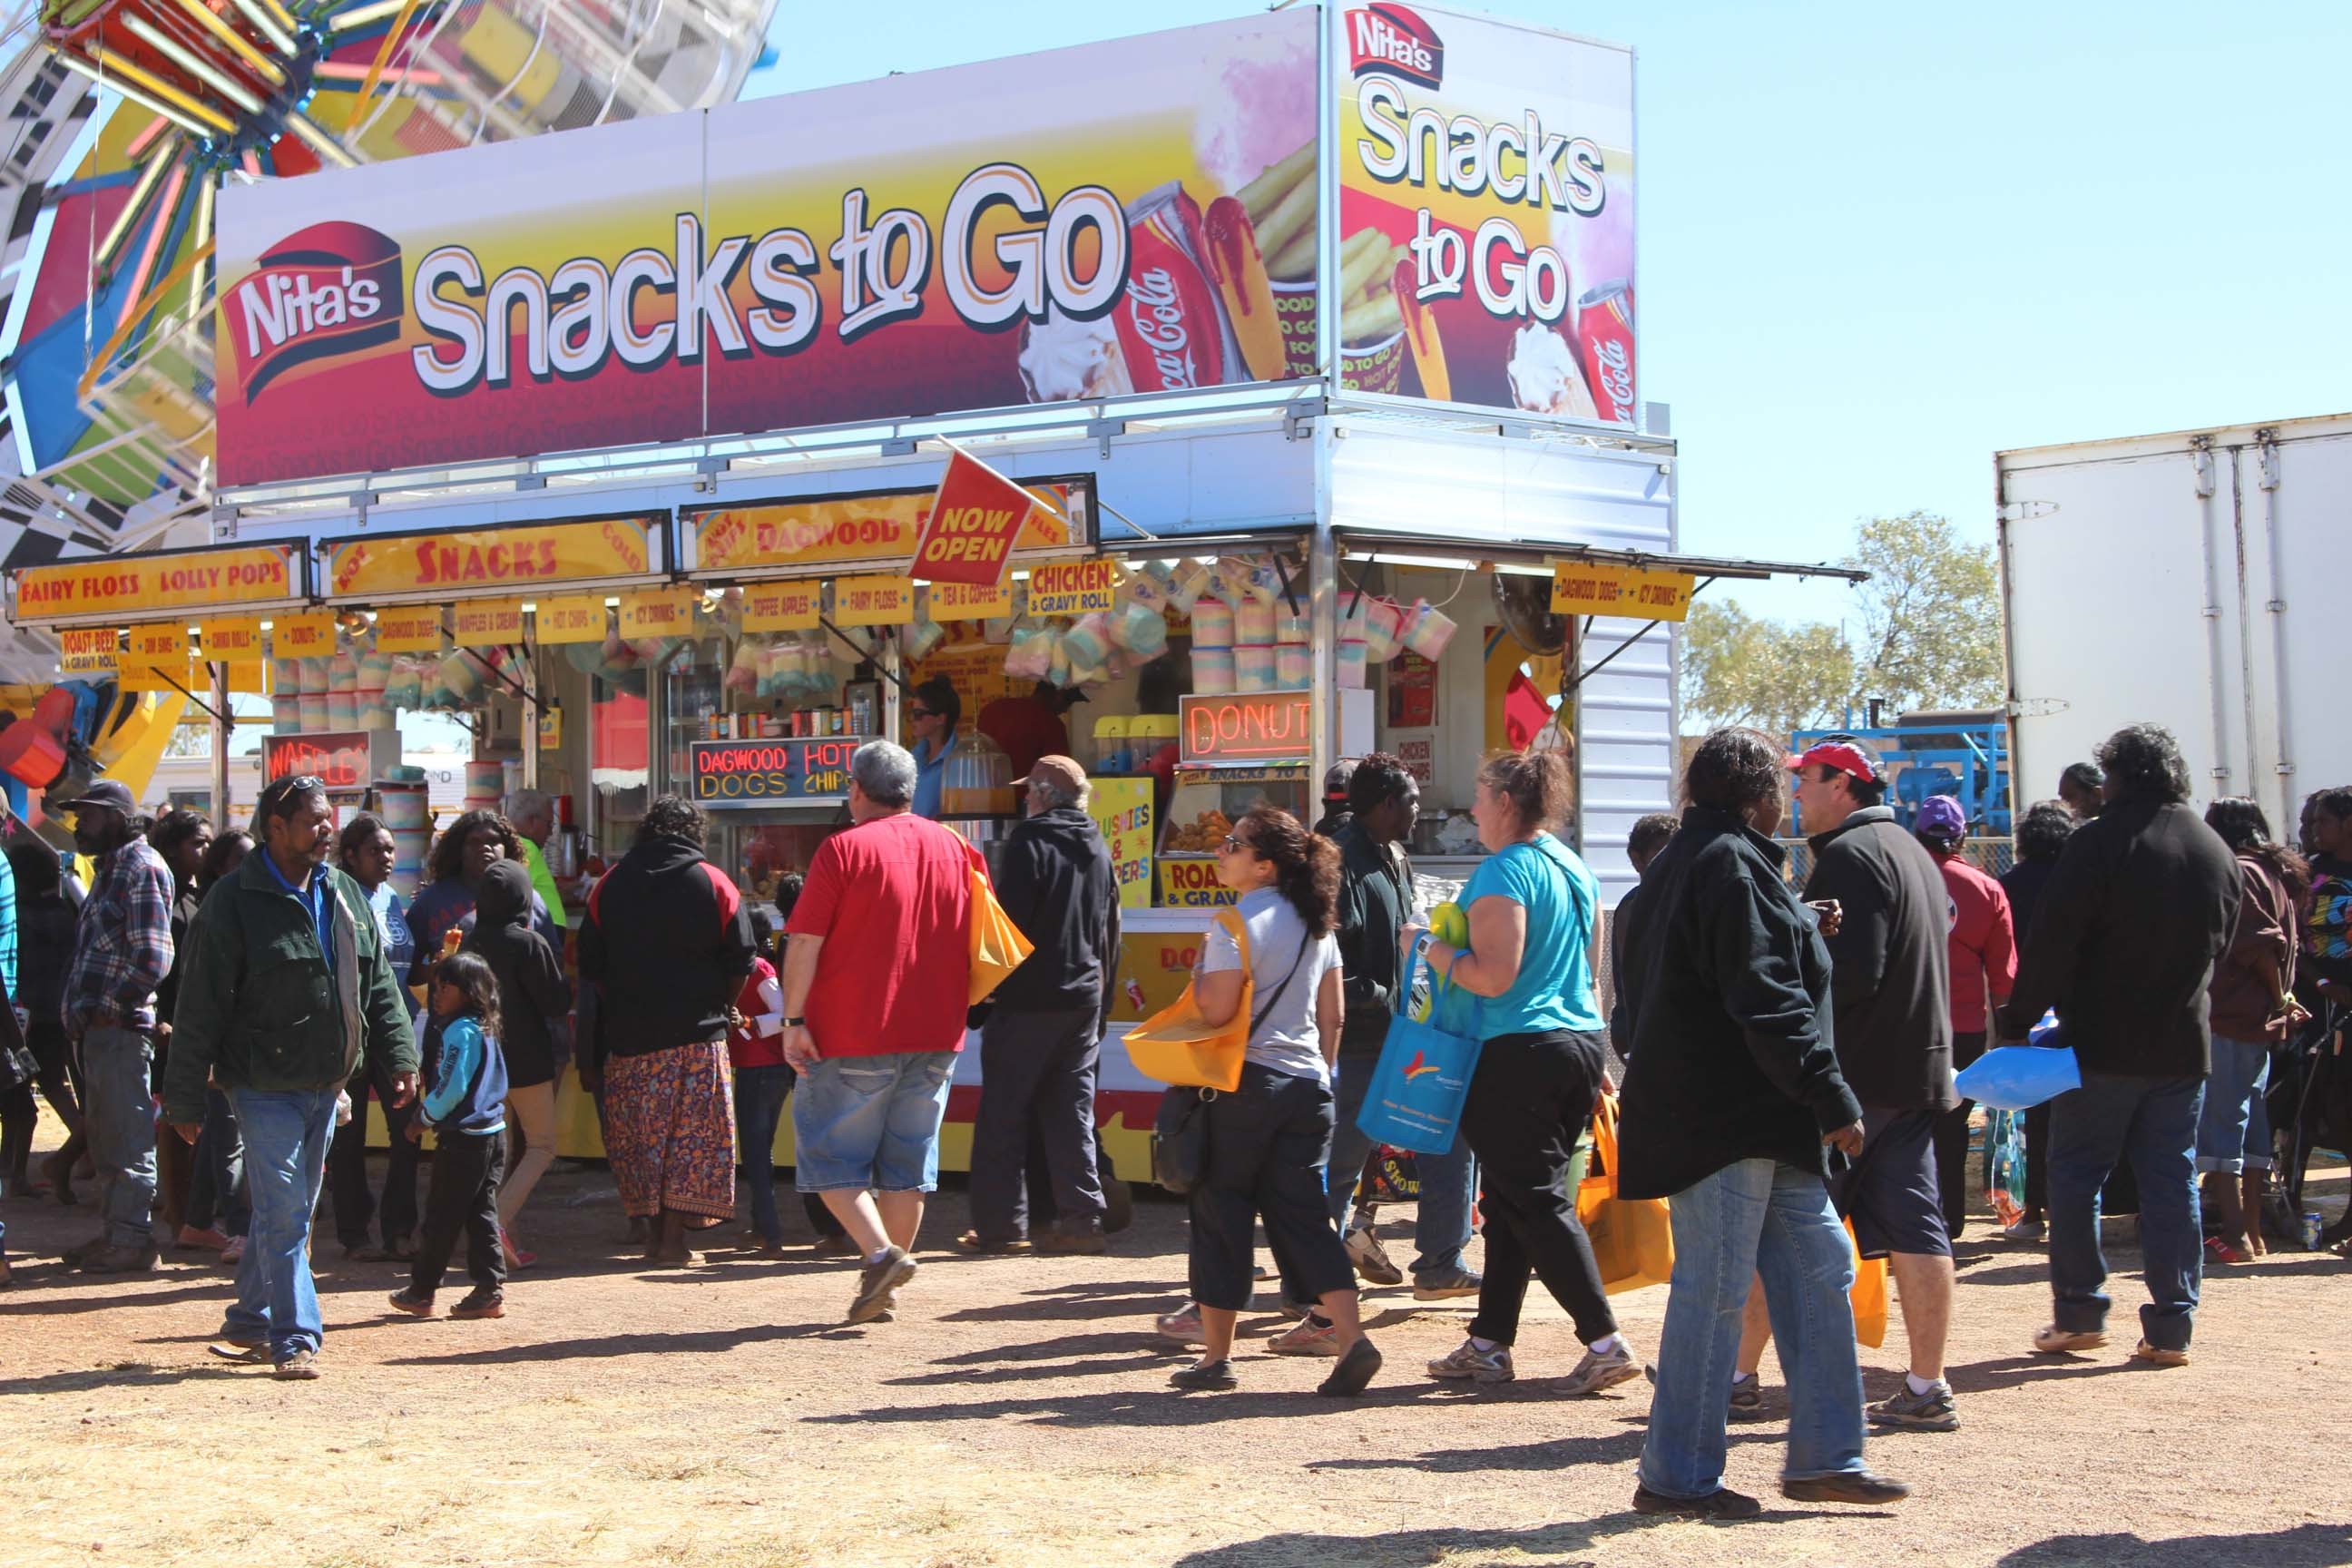 Beyond Blue showbags could be spotted among the crowd at the Tennant Creek Show.